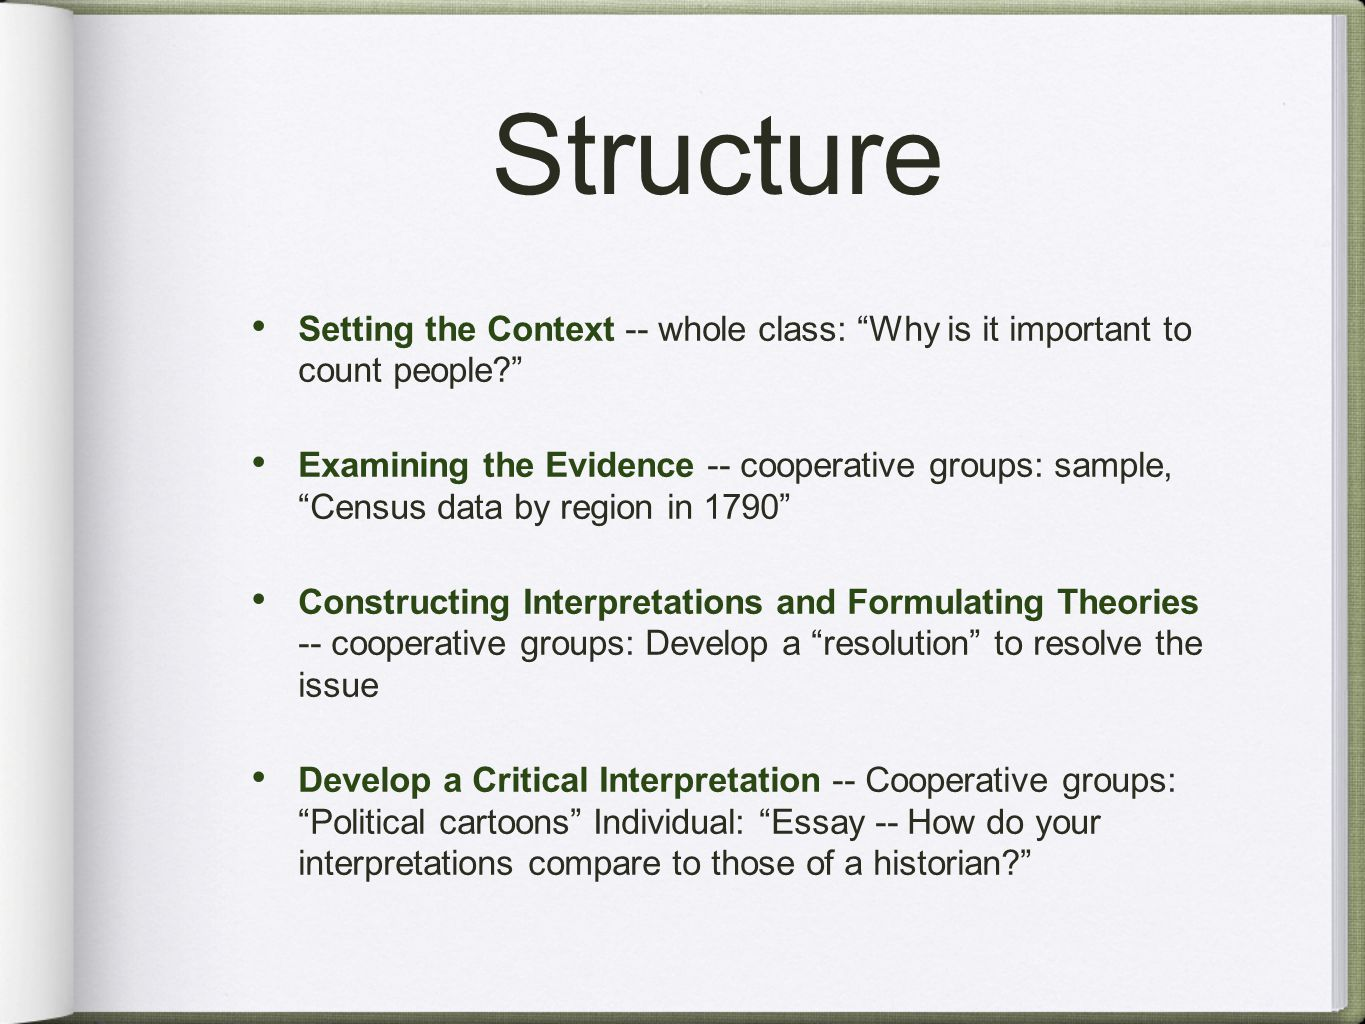 Structure Setting the Context -- whole class: Why is it important to count people Examining the Evidence -- cooperative groups: sample, Census data by region in 1790 Constructing Interpretations and Formulating Theories -- cooperative groups: Develop a resolution to resolve the issue Develop a Critical Interpretation -- Cooperative groups: Political cartoons Individual: Essay -- How do your interpretations compare to those of a historian